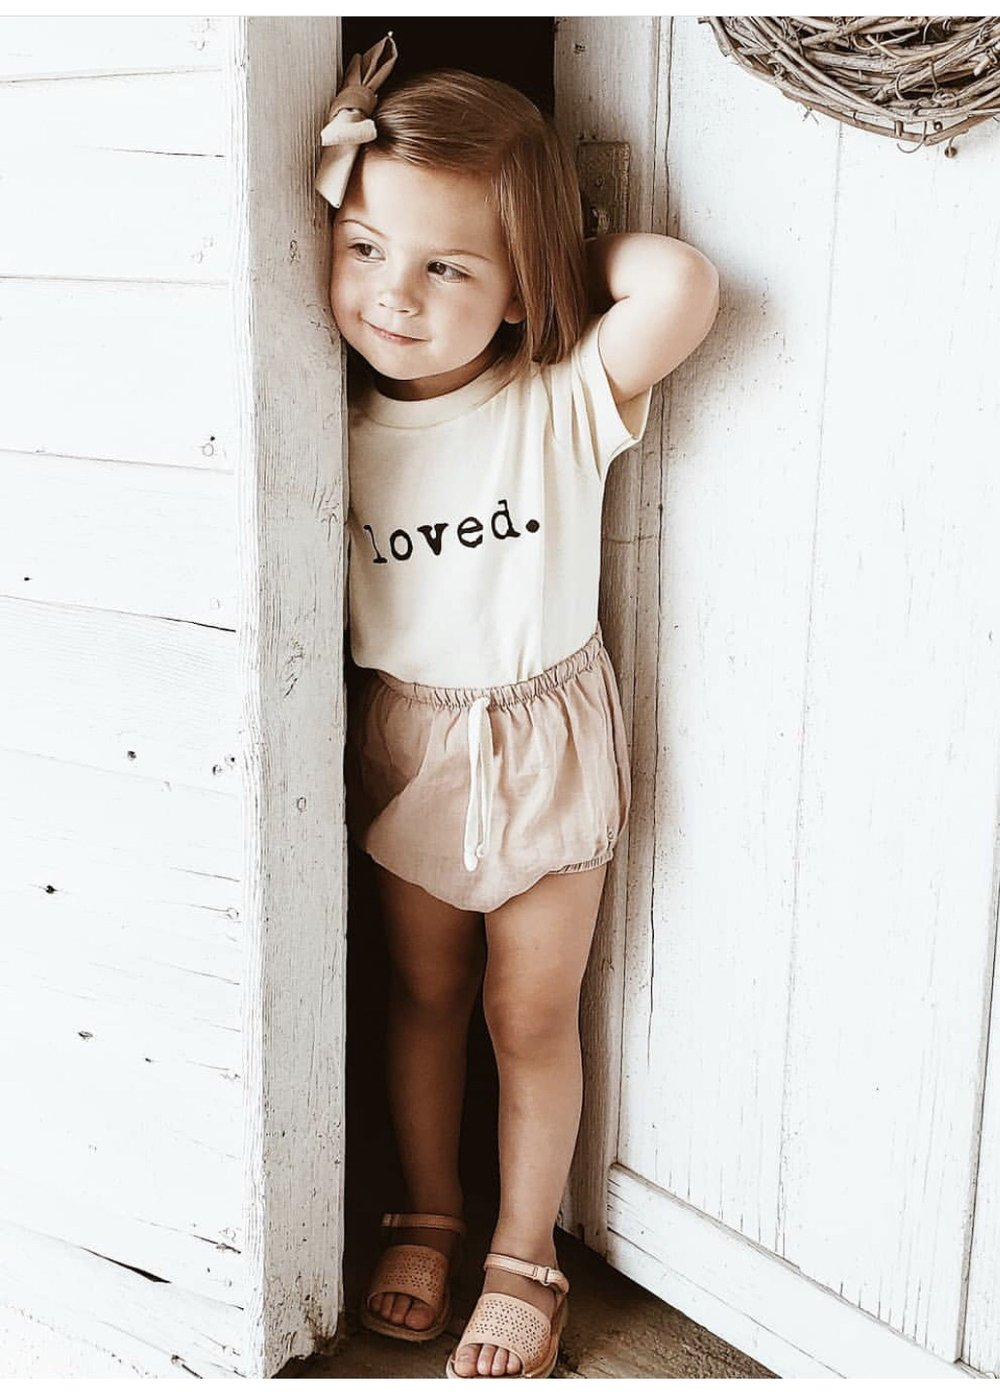 Paul & Paula: Organic and gender neutral kids clothes from Tenth & Pine